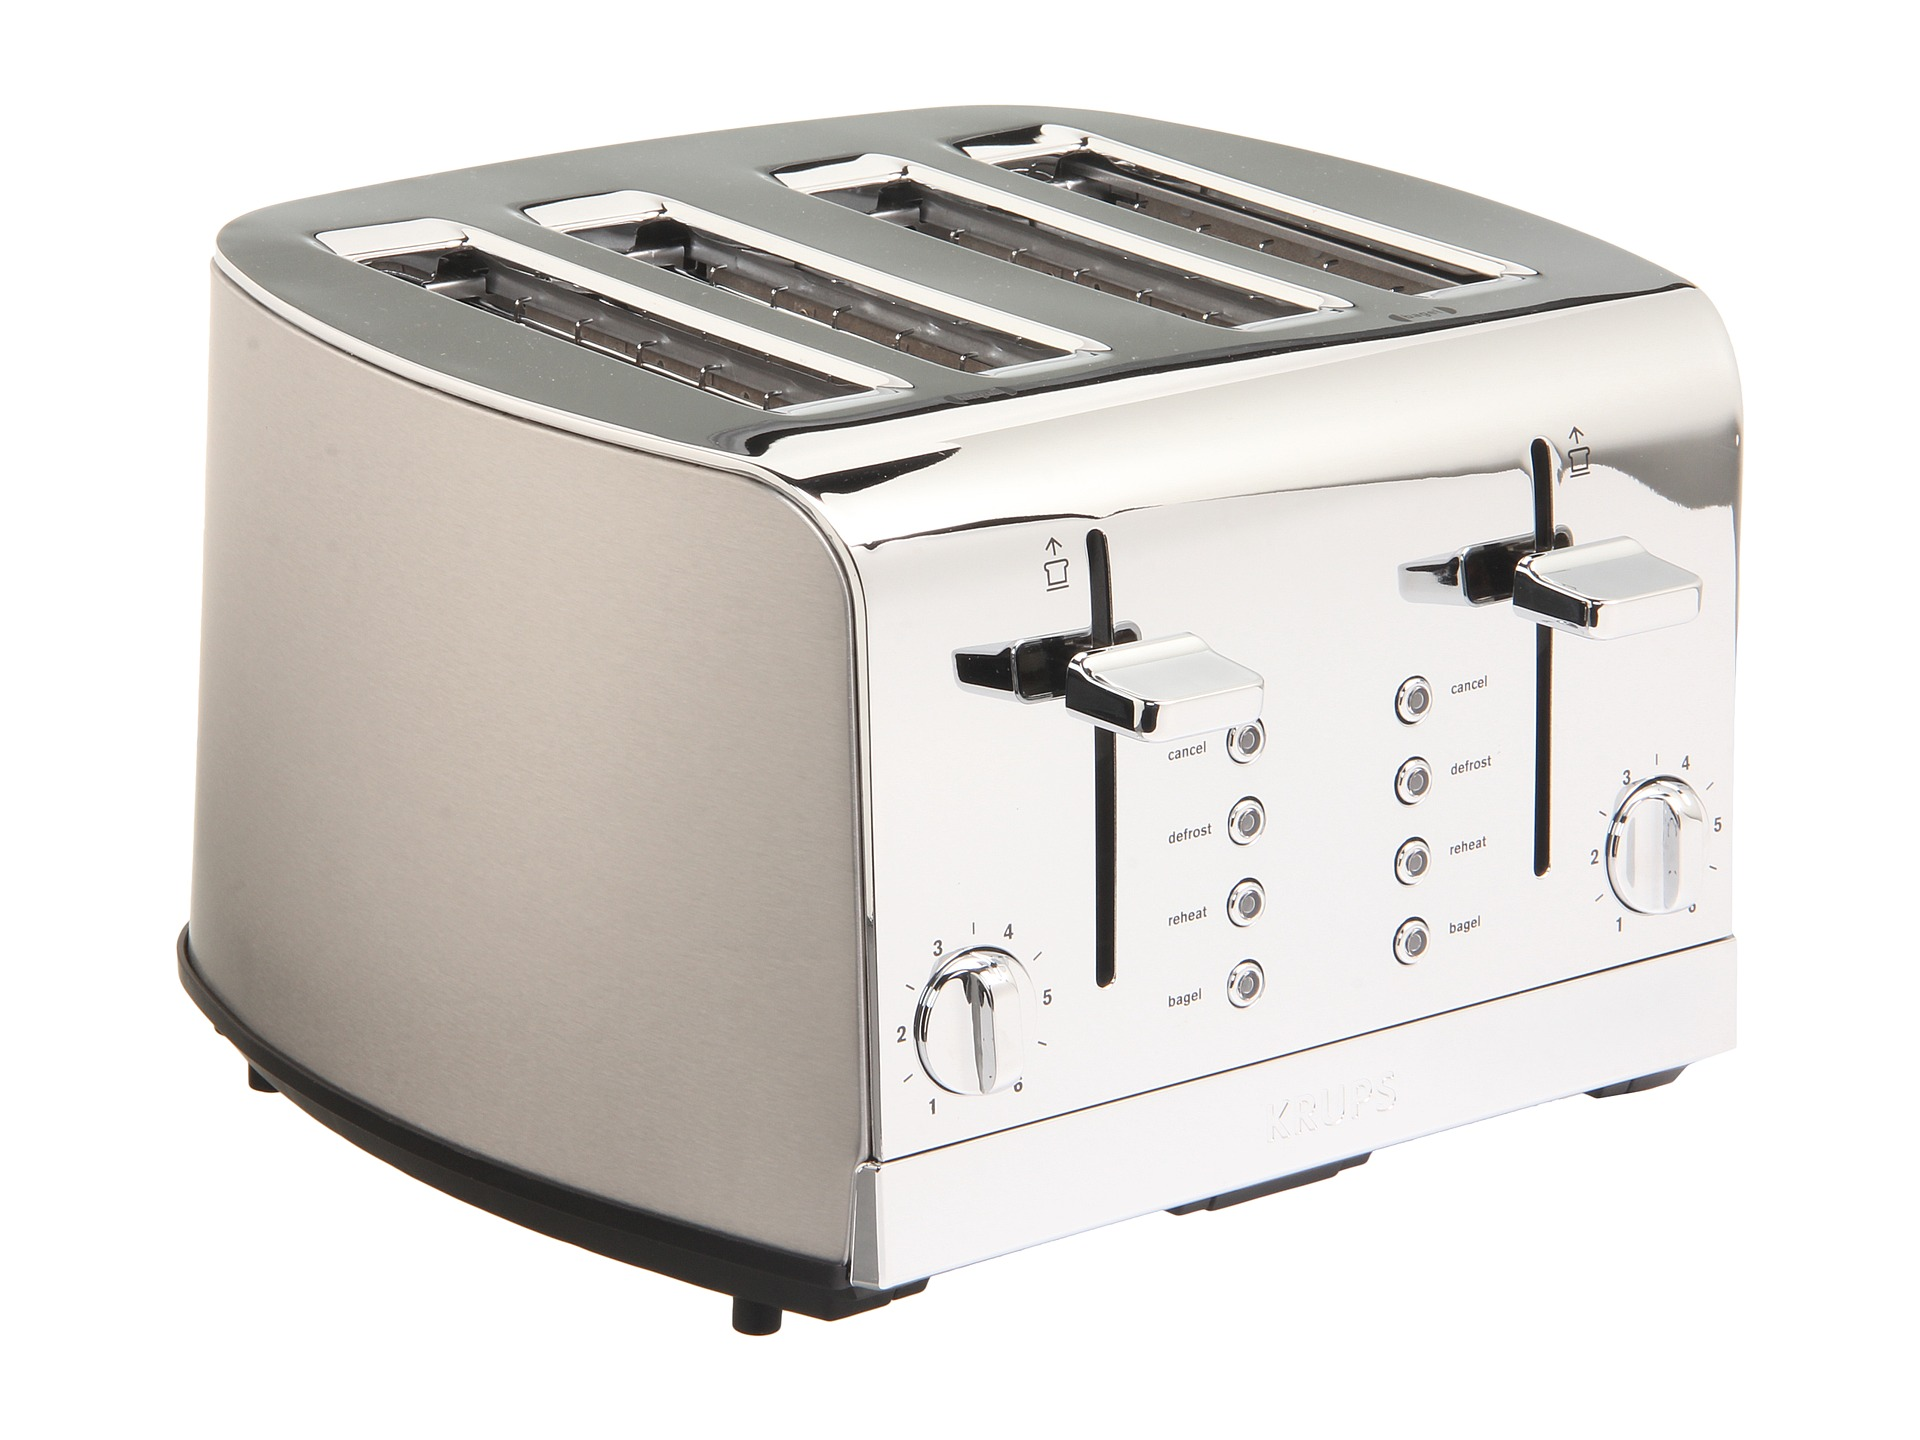 Furniture Stores In Amarillo 4 slice toaster - 28 images - accents blue 4 slice toaster ...